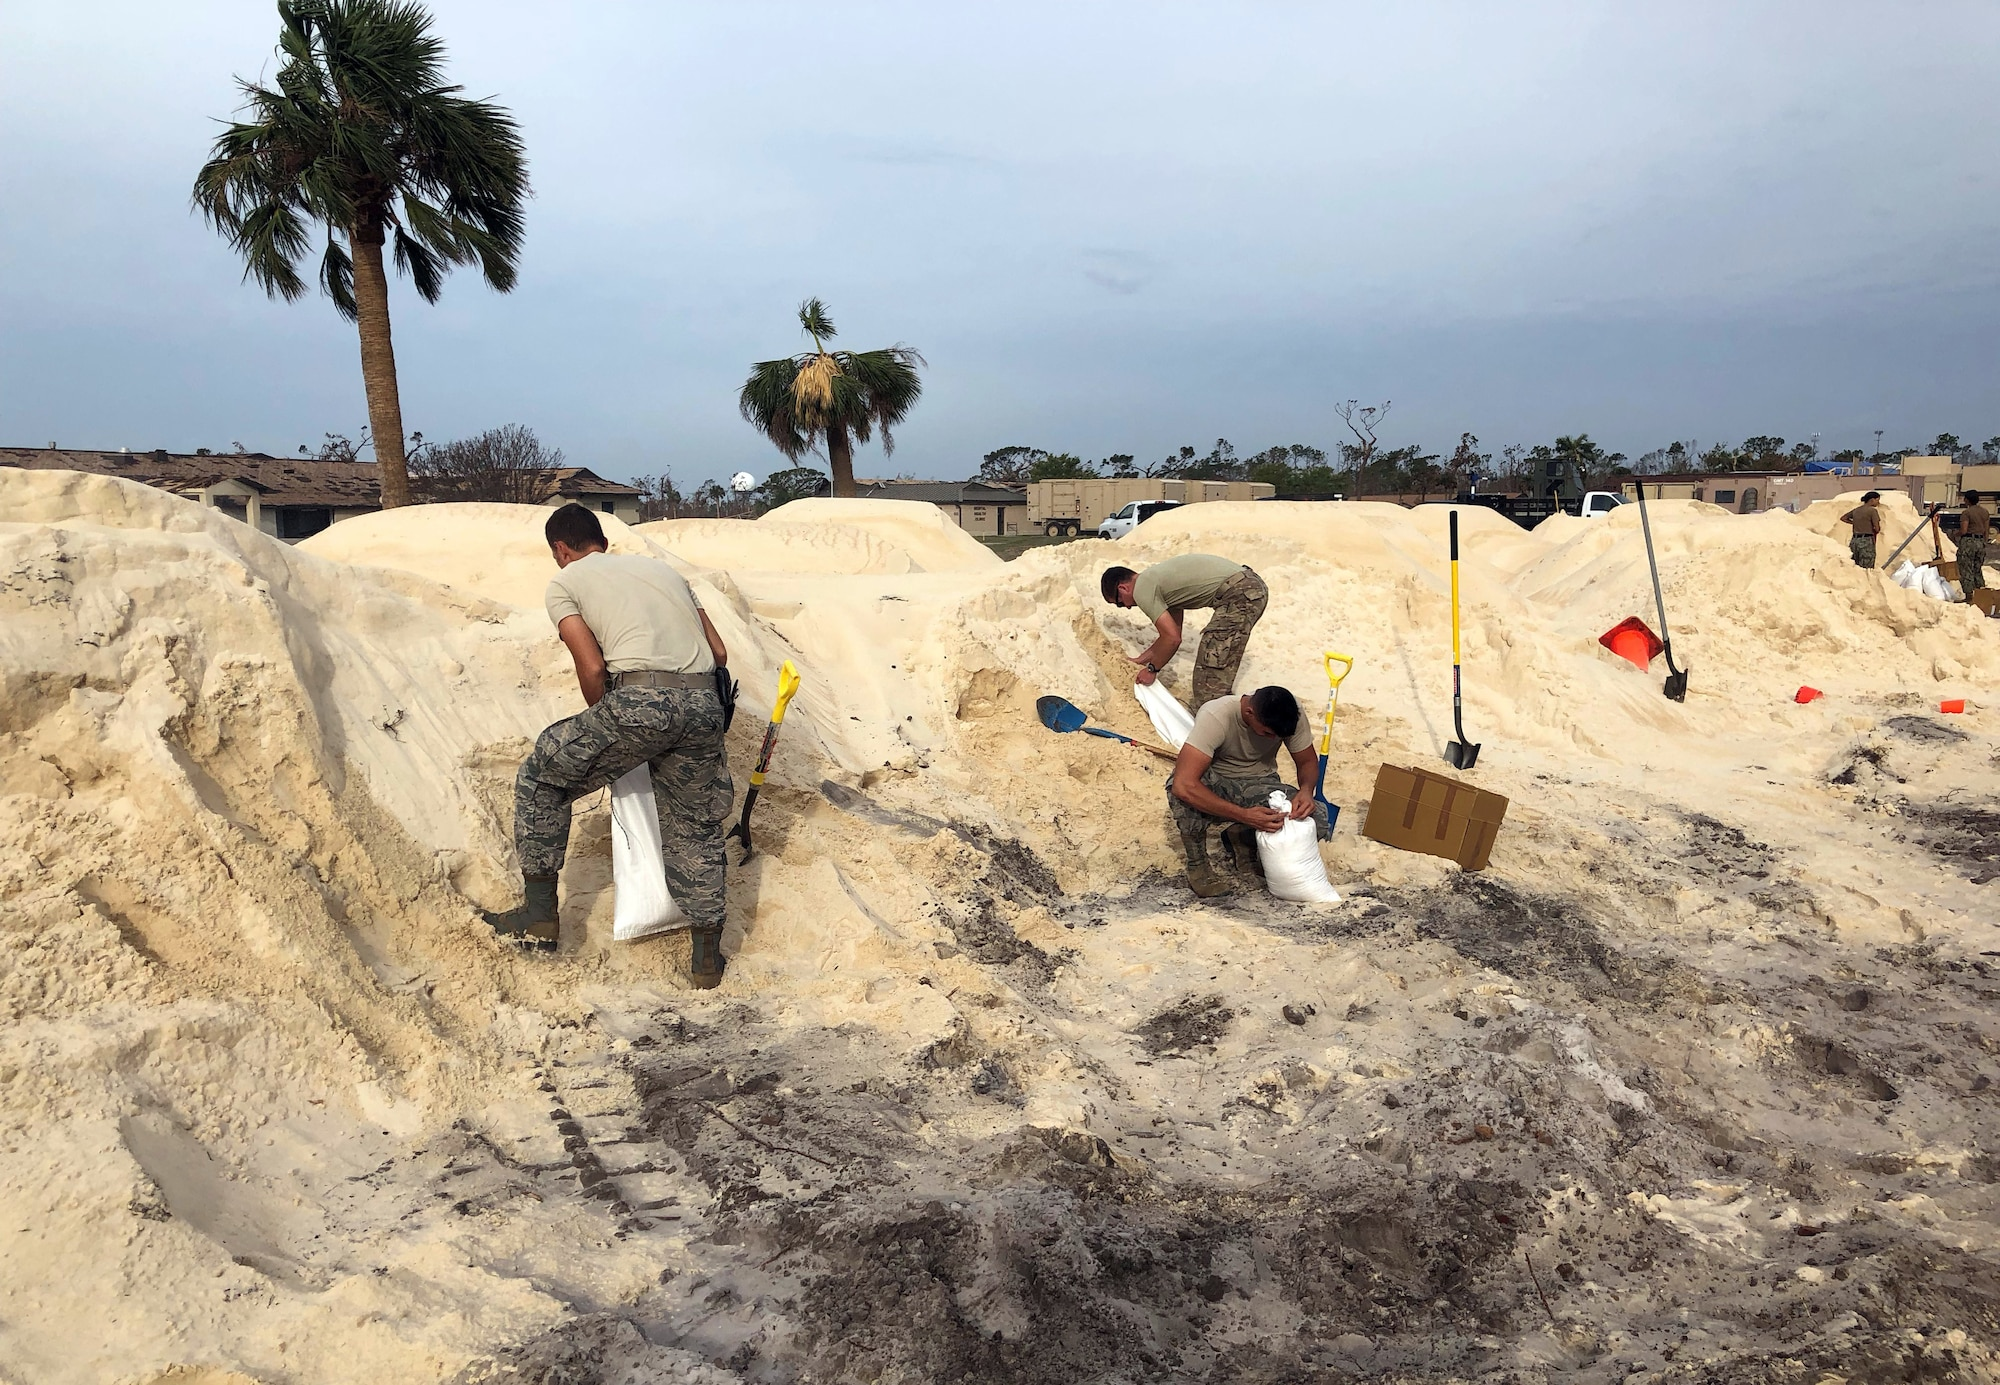 From left: Staff Sgt. Charlie Hegwer, Tech. Sgt. Skyler Shull and Airman Hunter Benson, 85th Engineering Installation Squadron, fill sandbags to place around tents in preparation of inclement weather at Tyndall Air Force Base, FL. The Airmen are part of a five-team team helping restore communication capabilities to the base after Hurricane Michael made landfall along the Florida Gulf Coast in mid-October. (U.S. Air Force courtesy photo)